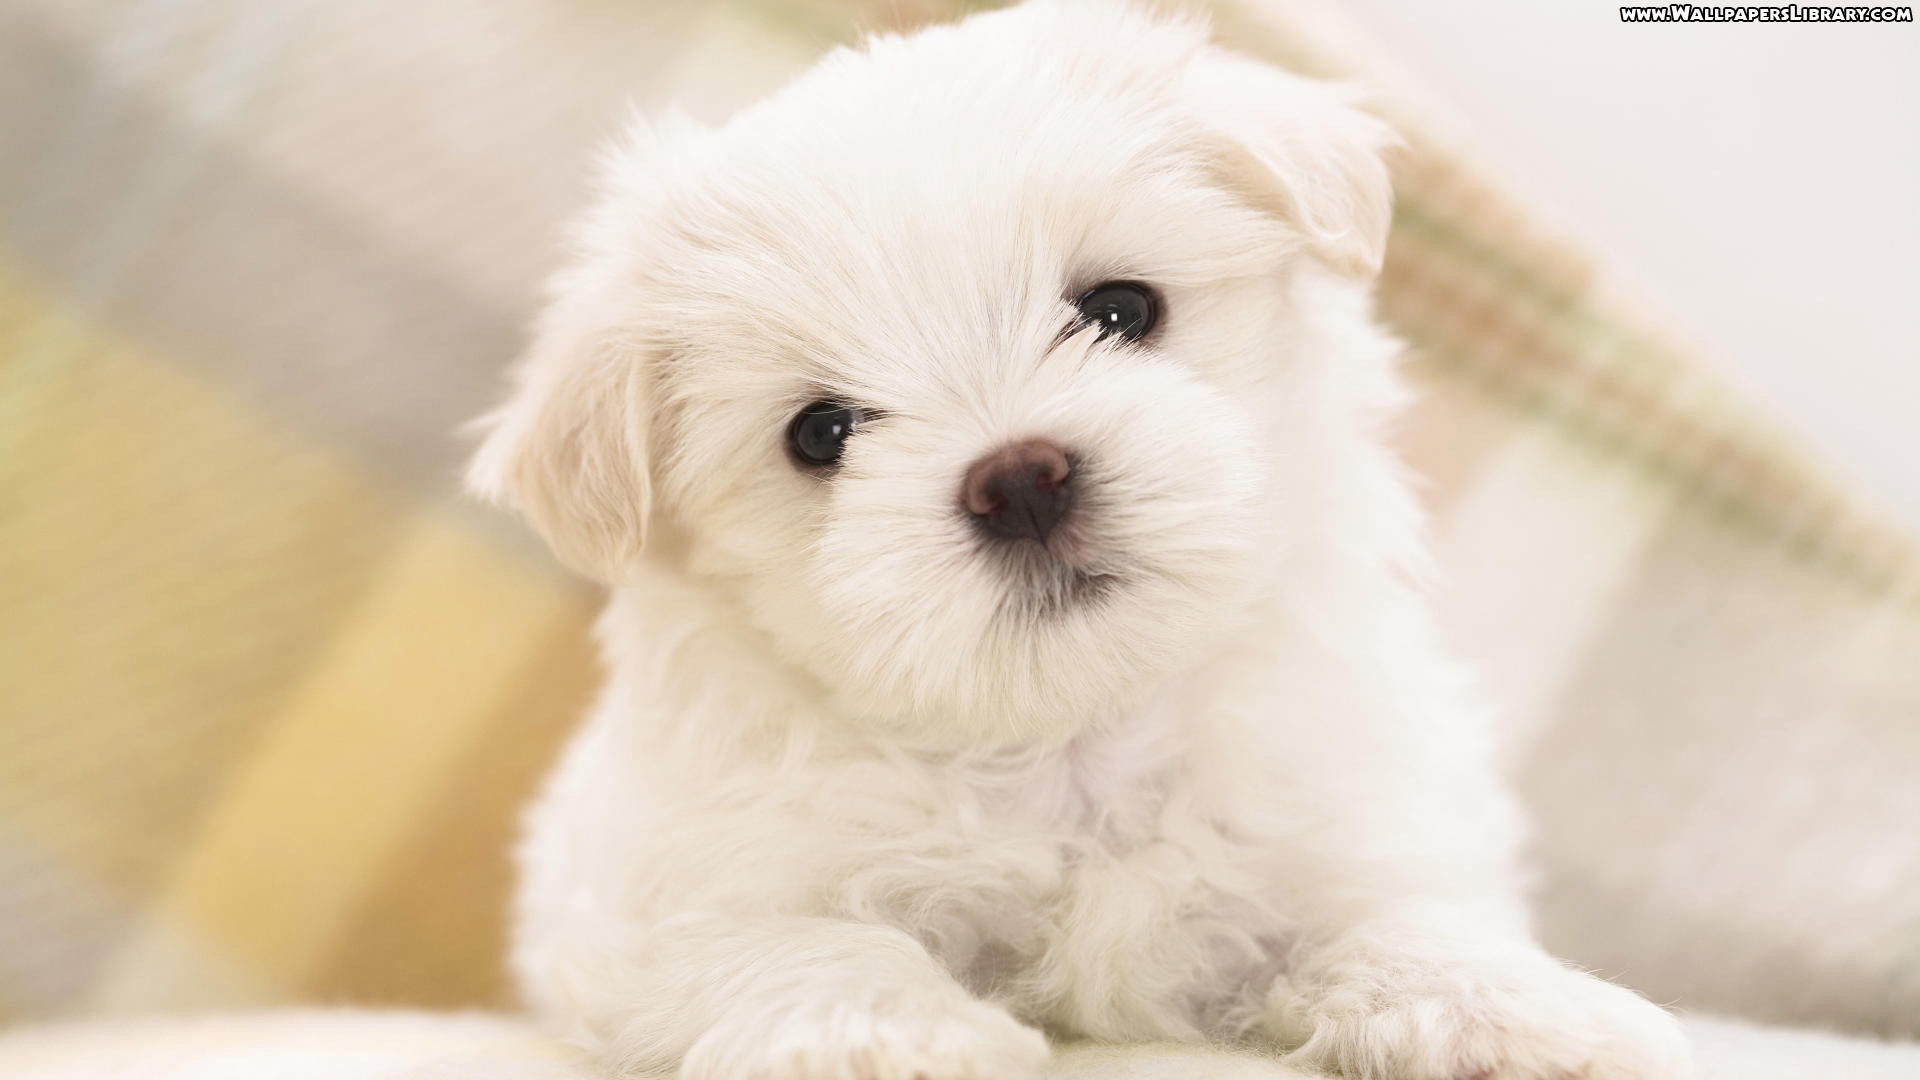 Cute puppy images for wallpaper dowload